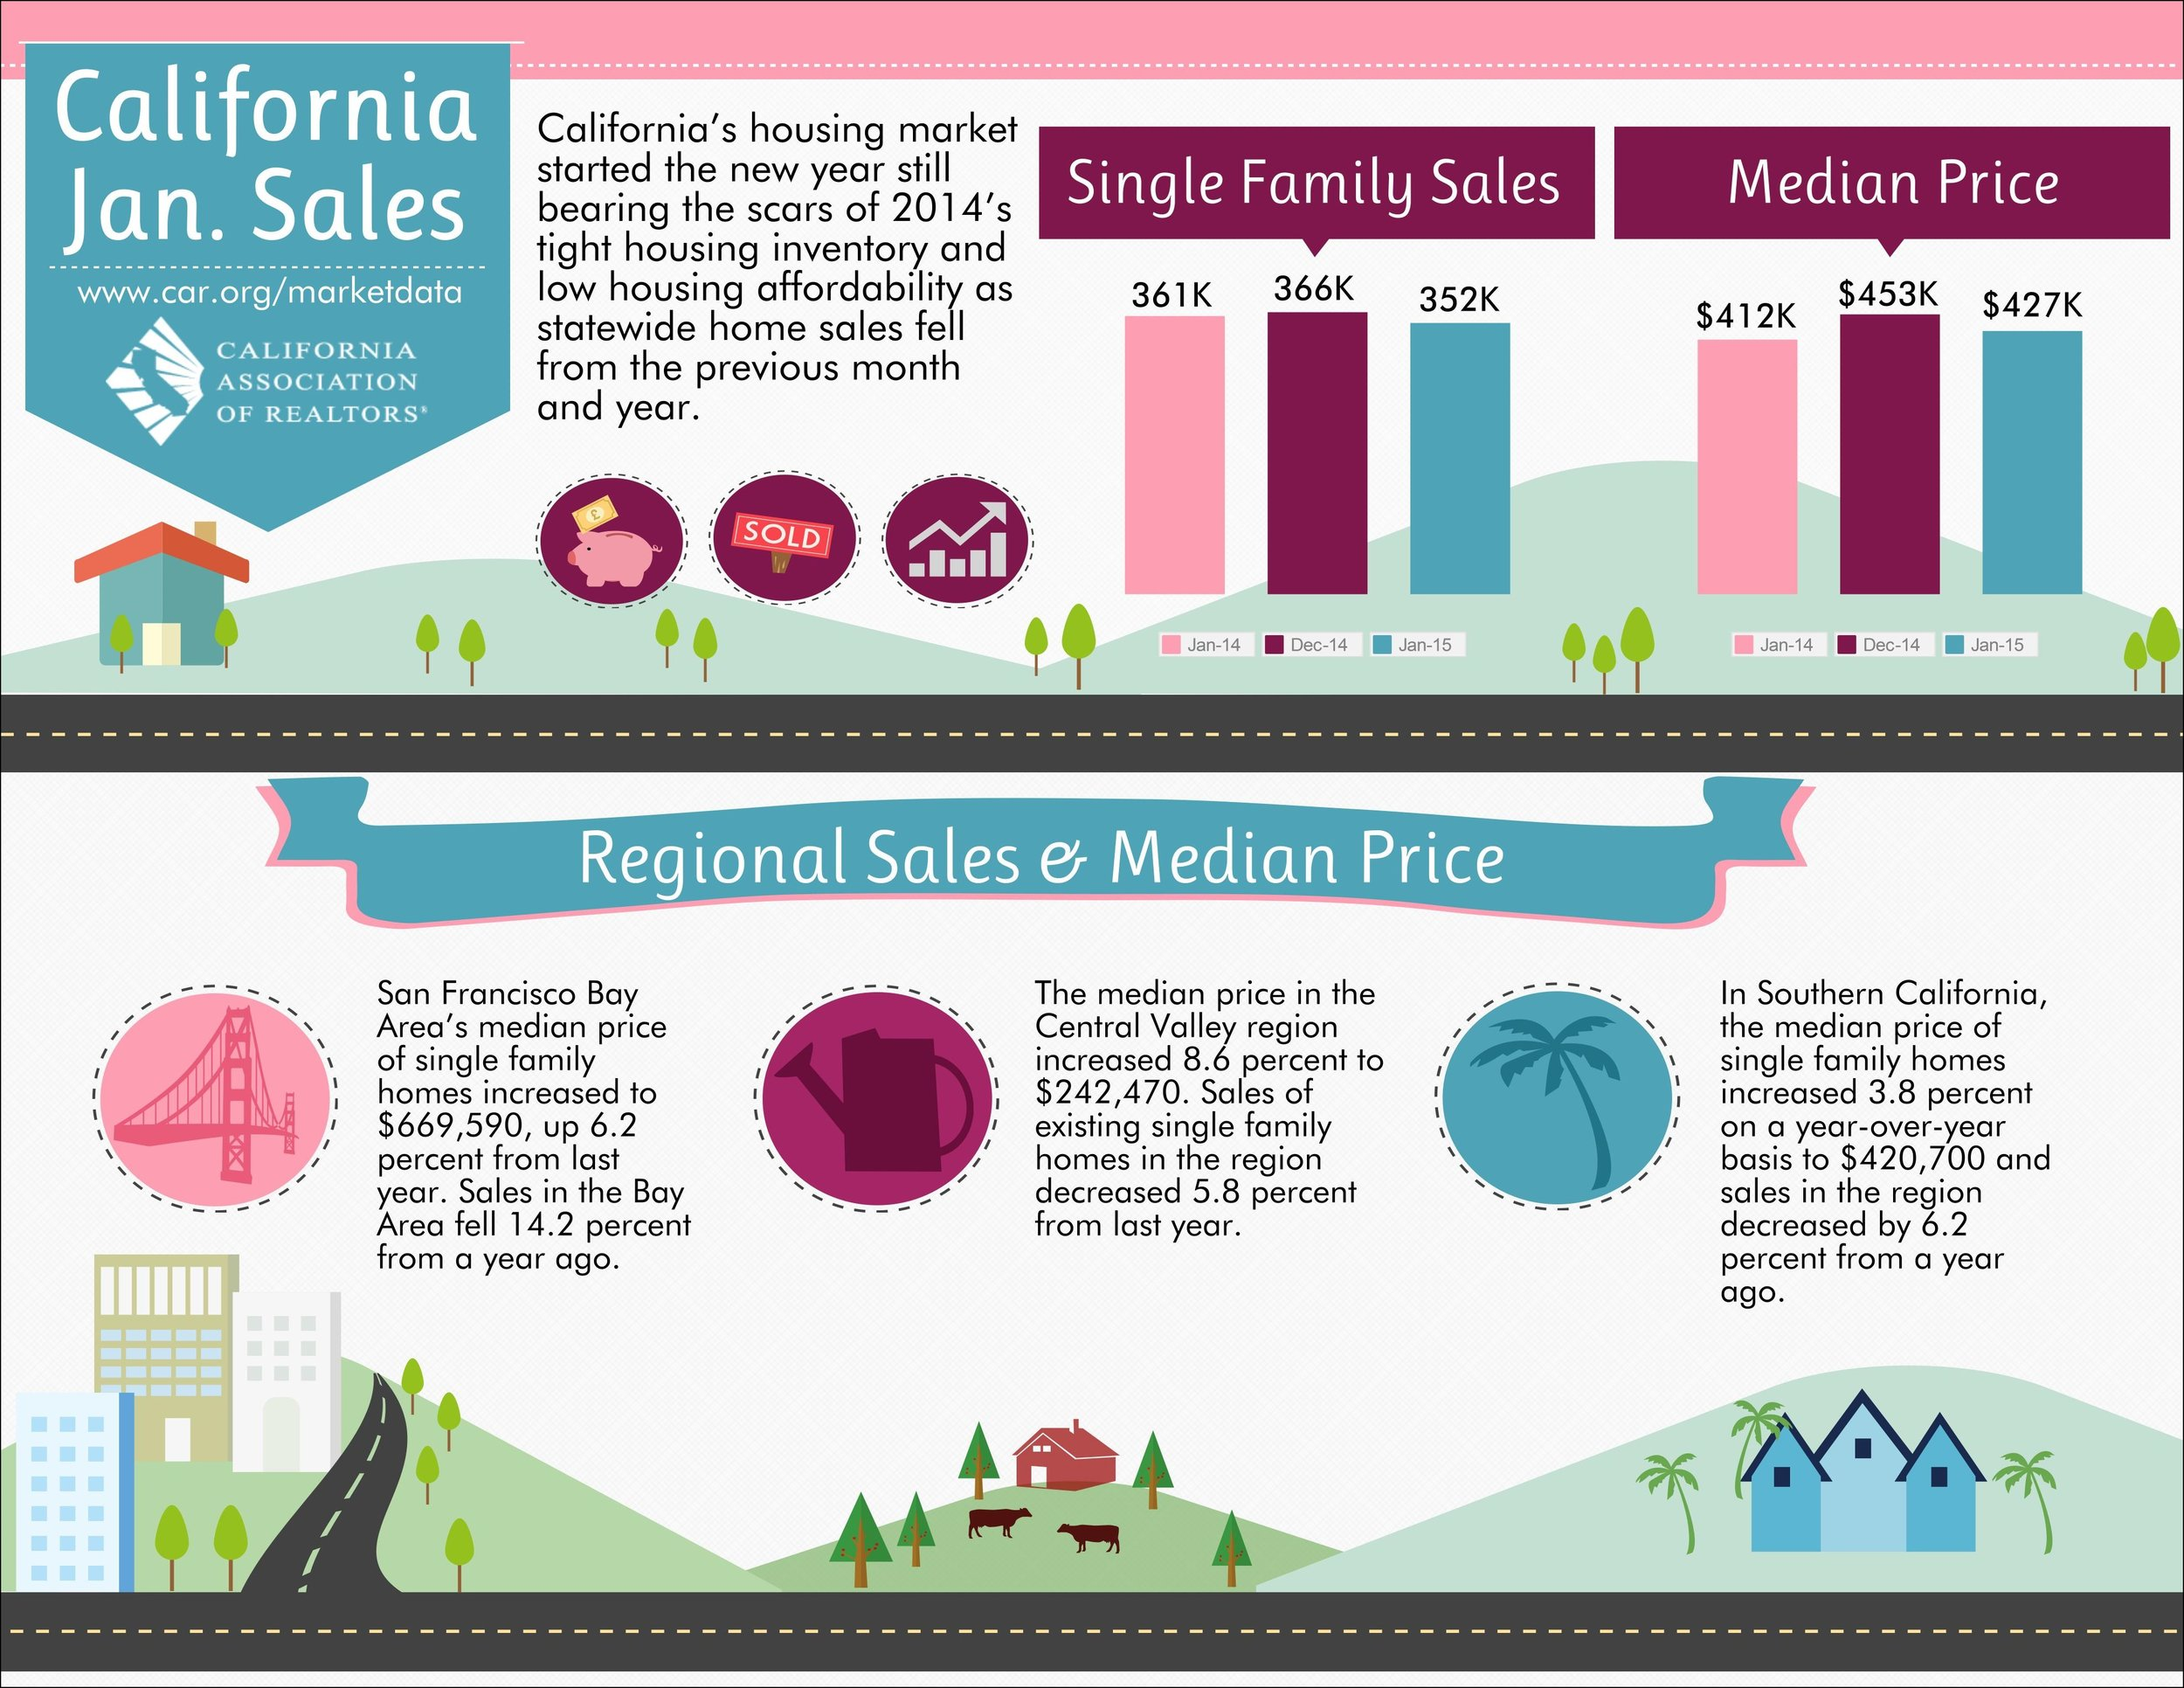 California Sales via California Association of REALTORS®